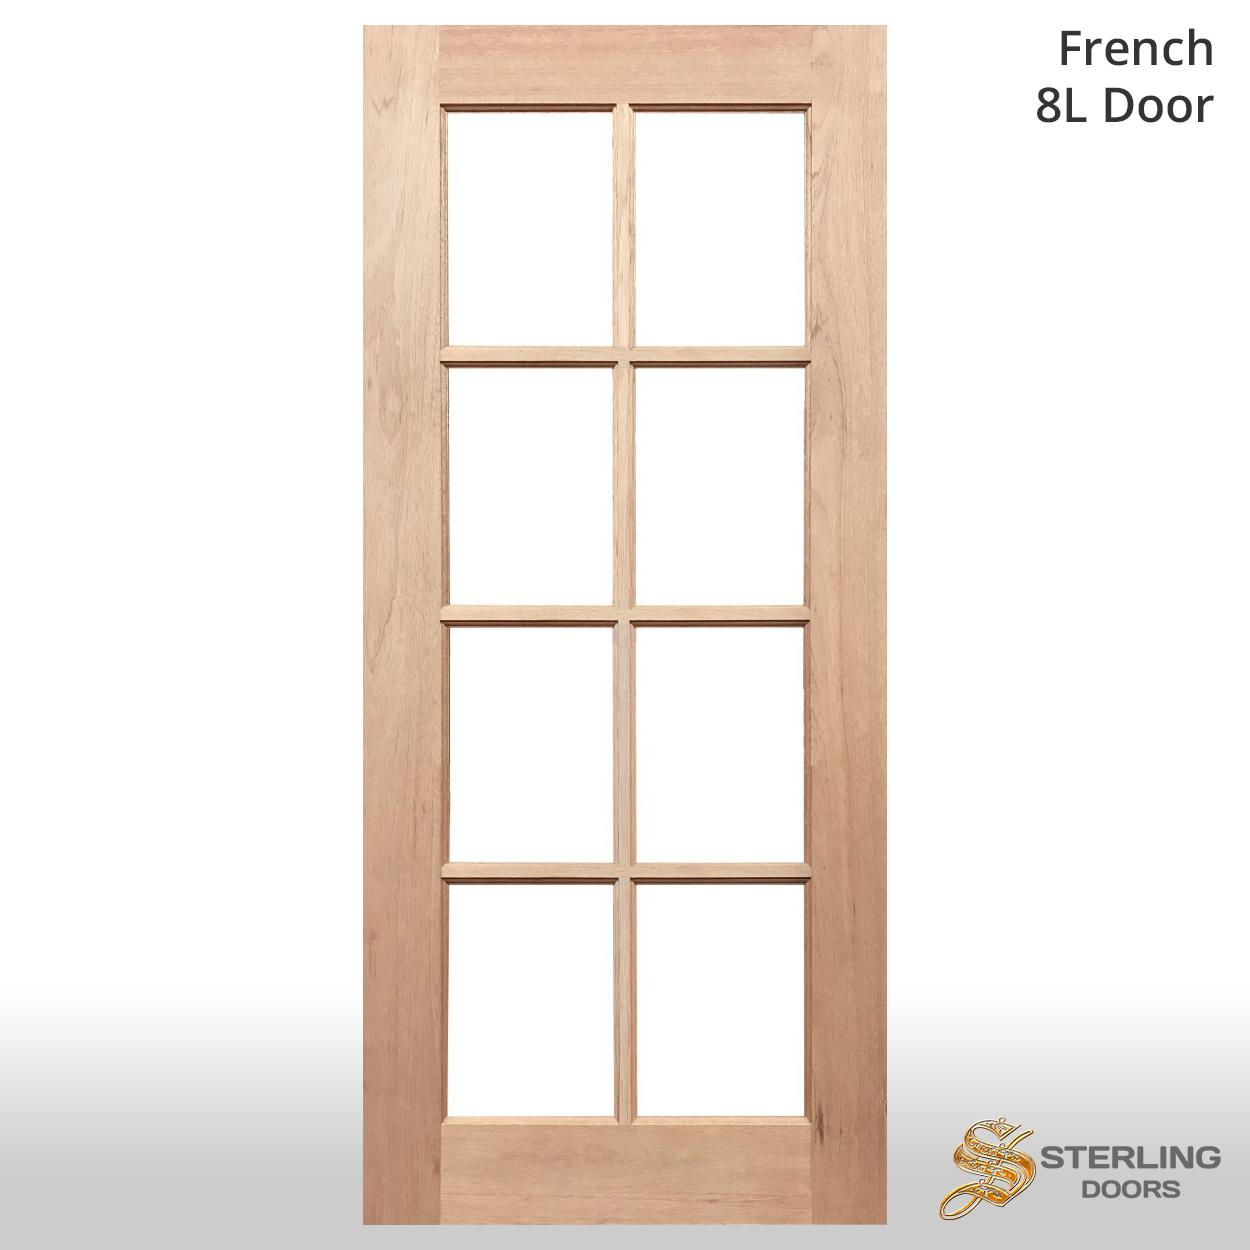 Timber Glass Doors French Doors French 8l Solid Timber Door